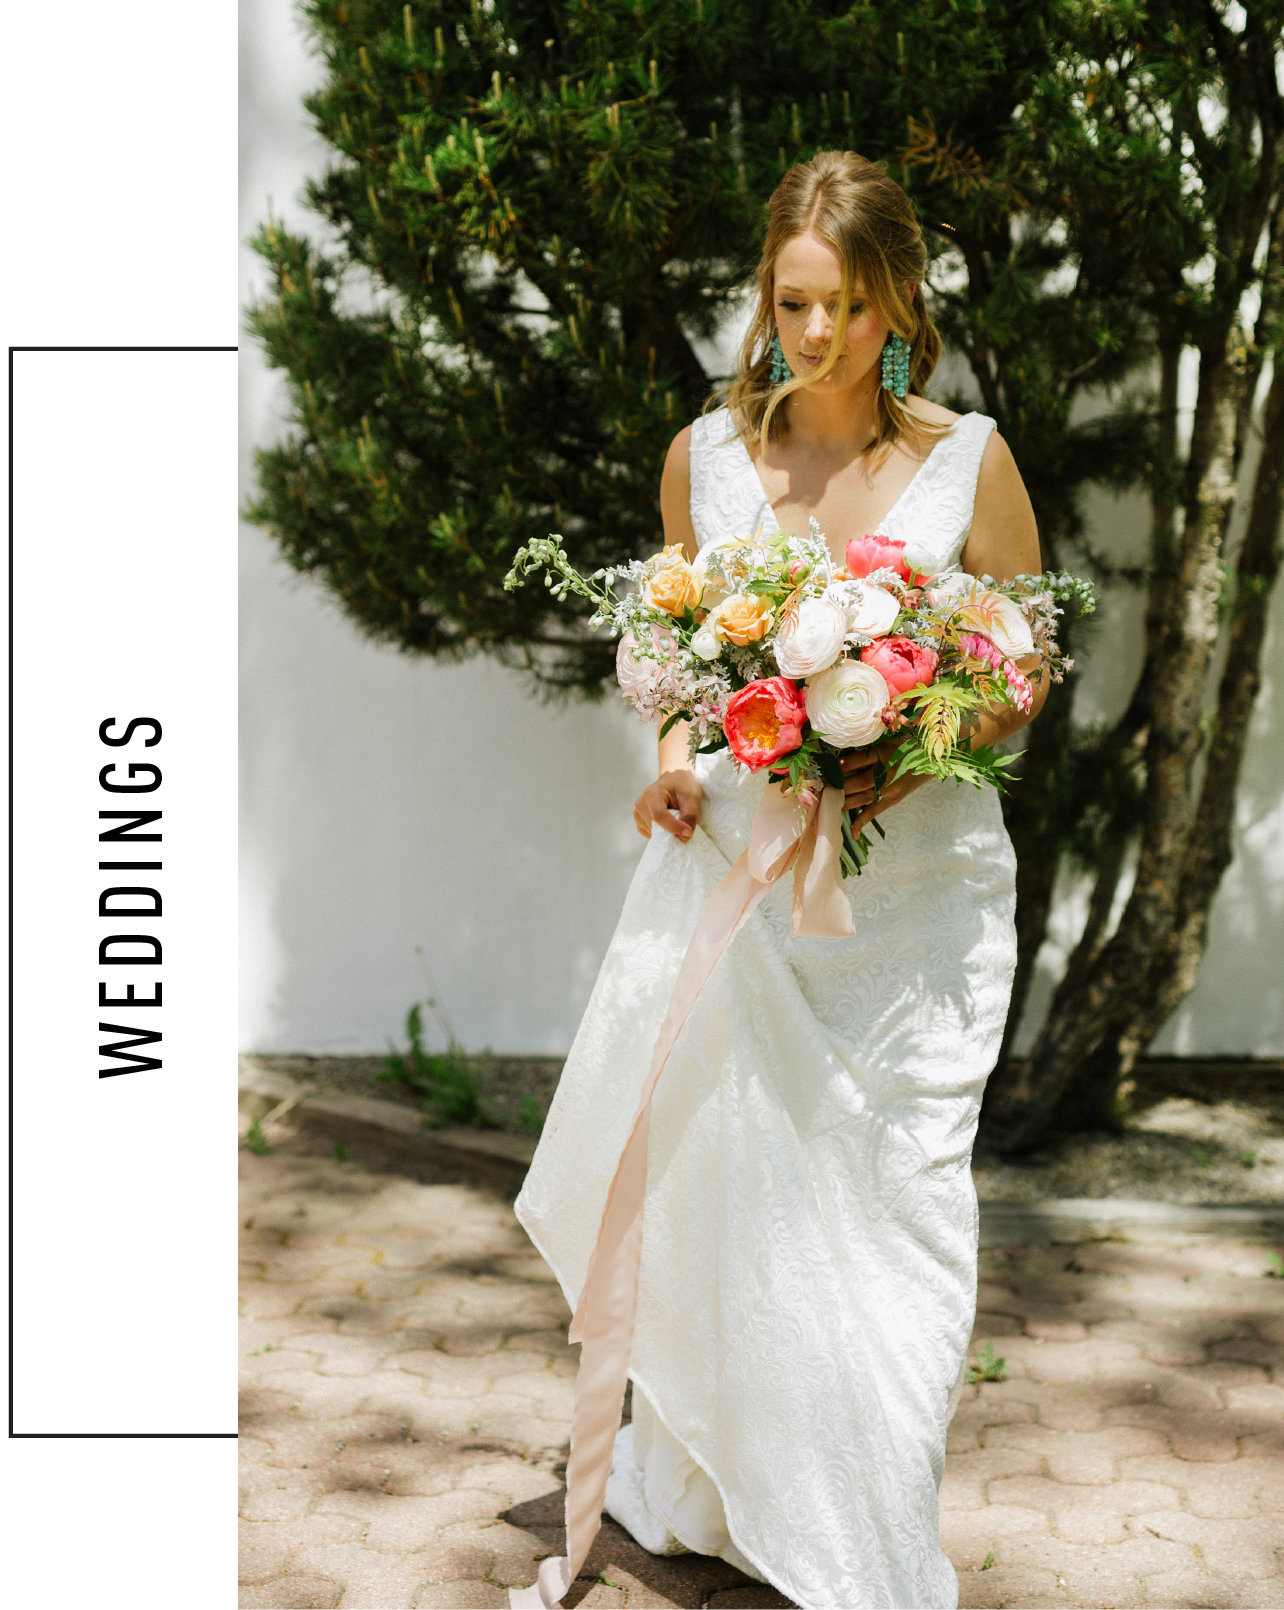 christy-d-swanberg-photography-home-gallery-thumbnails_Weddings.png